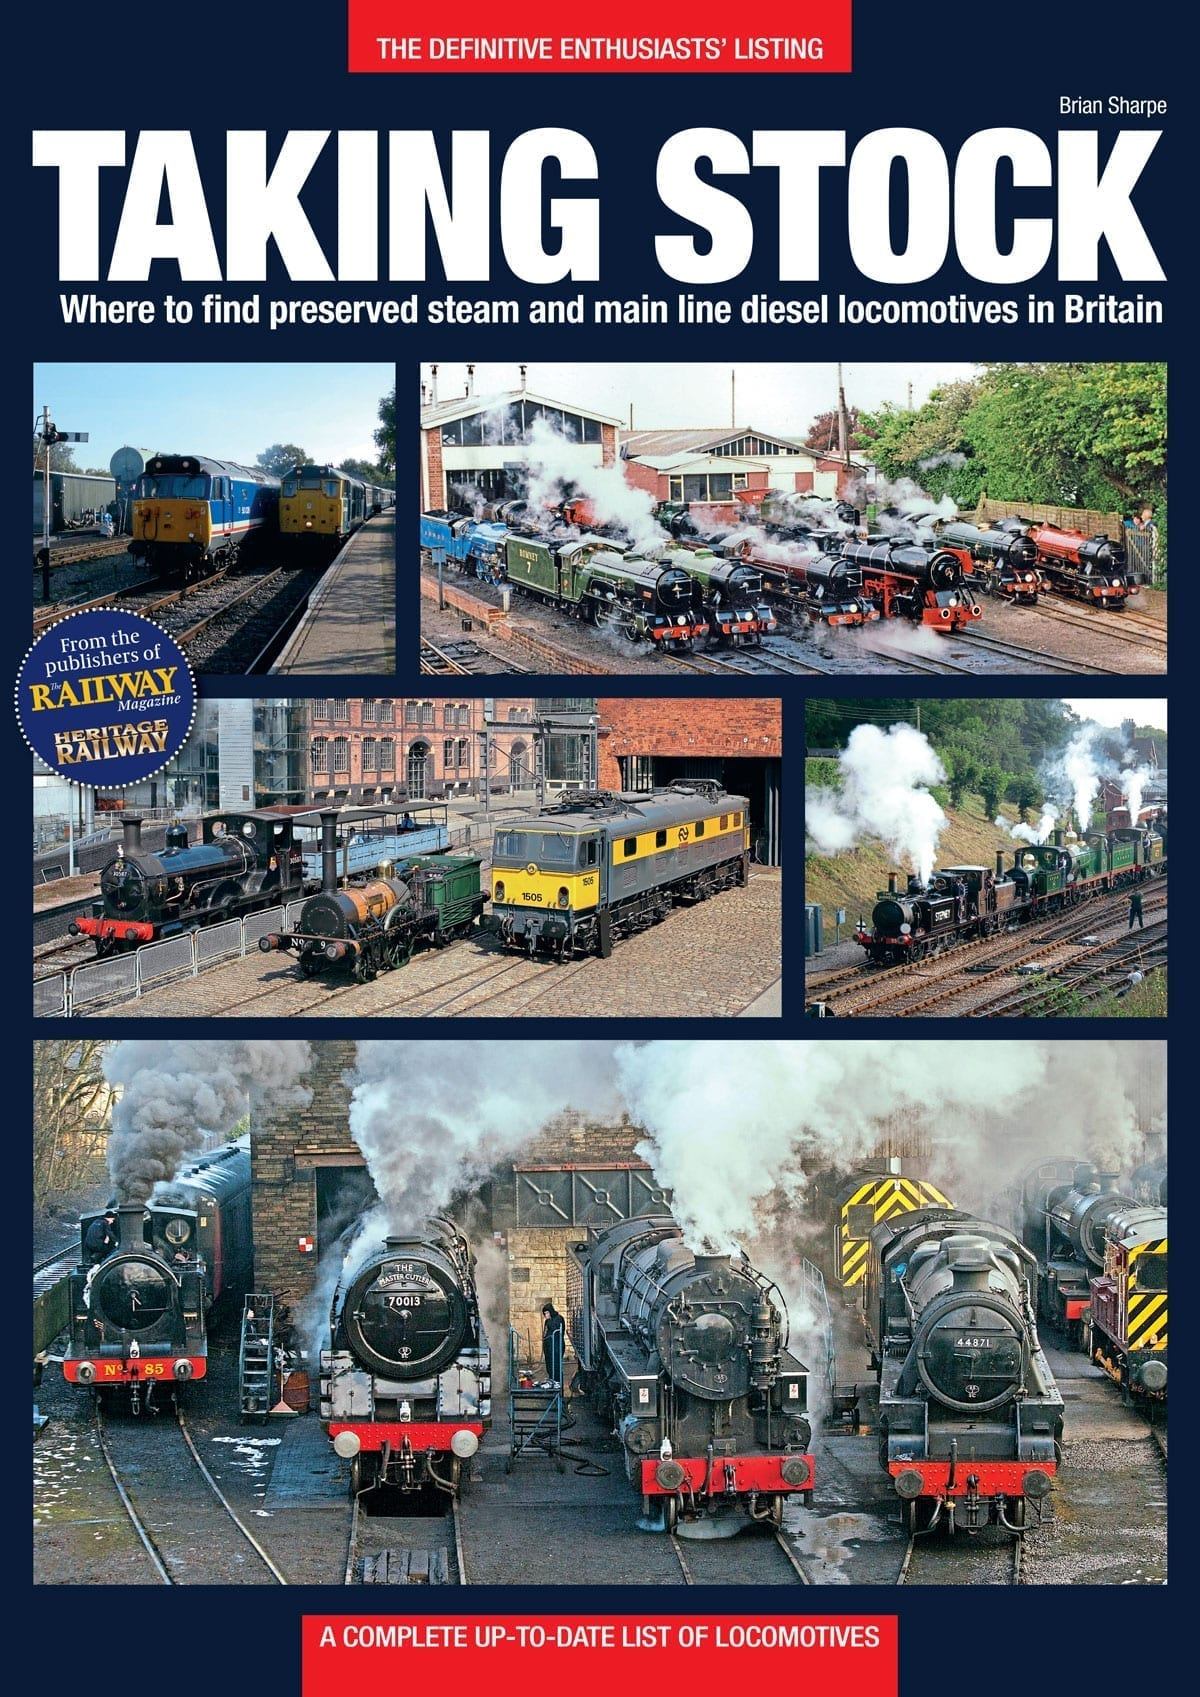 Taking Stock: Where to find preserved steam and main line diesel locomotives in Britain